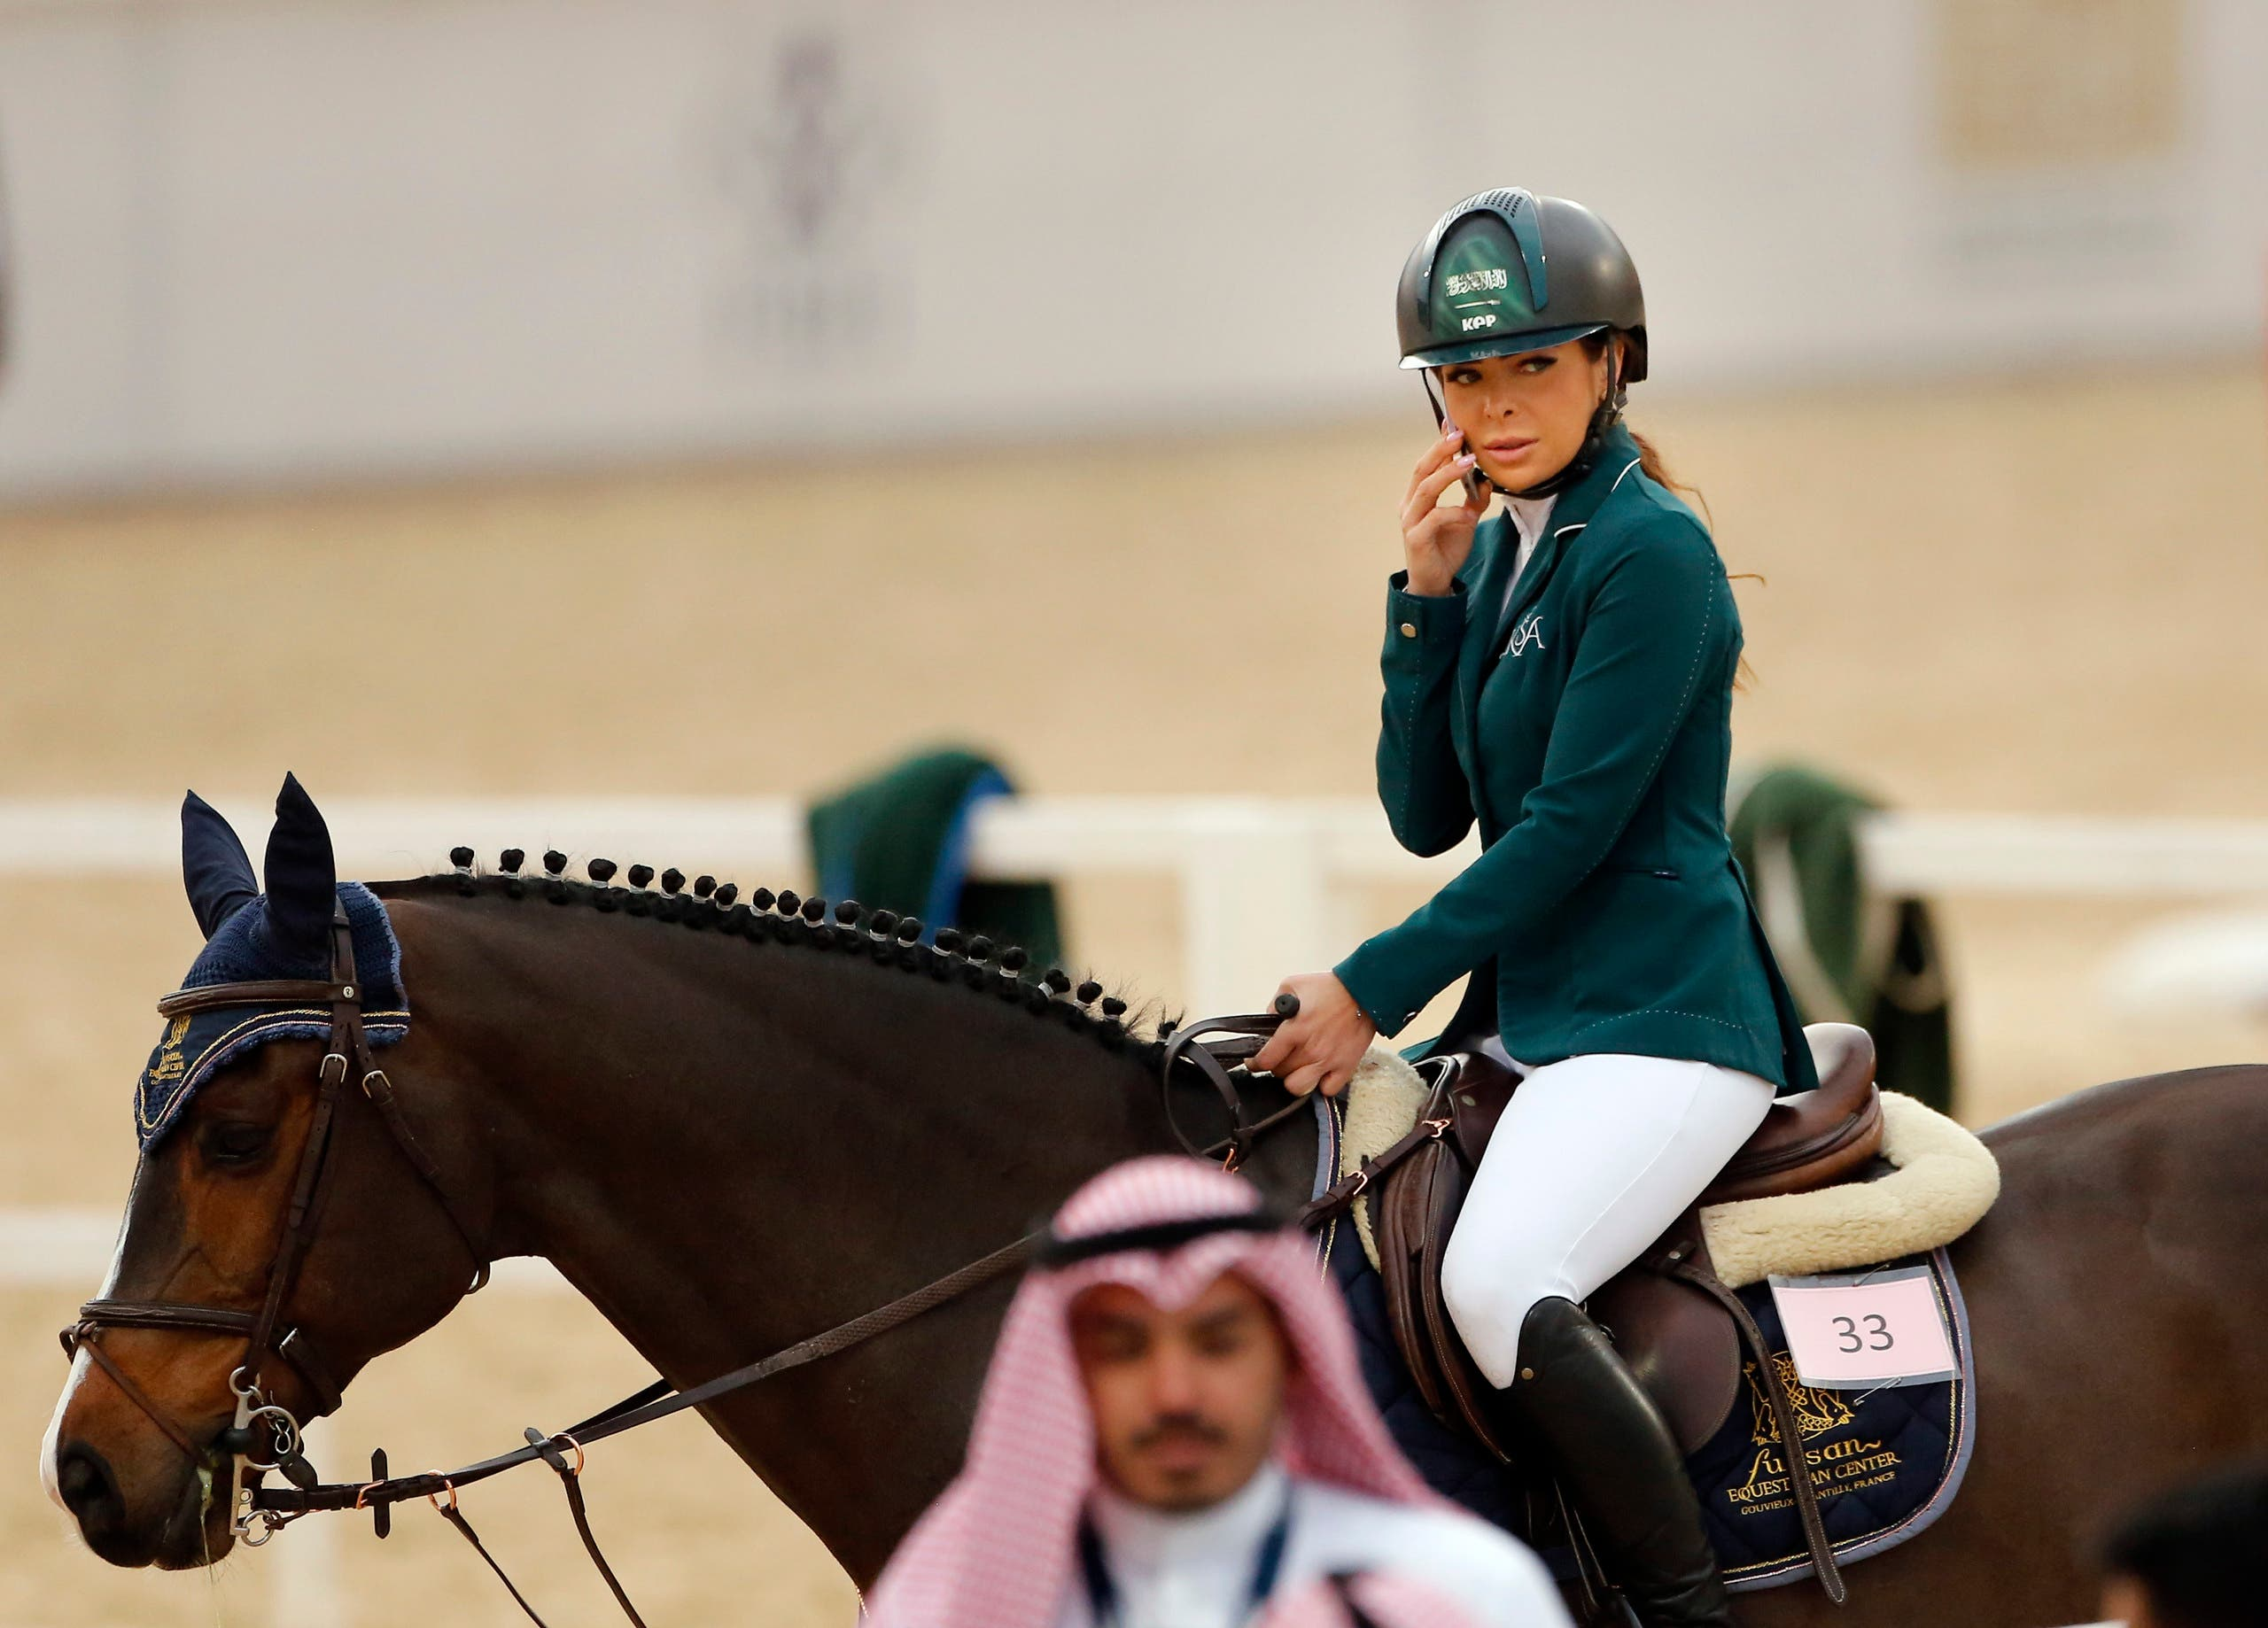 Saudi Dalma Malhas rides her horse during the Diriyah Equestrian Festival, where male and female equestrians are riding side-by-side for the first time in Riyadh Saudi Arabia. (File photo: AP)